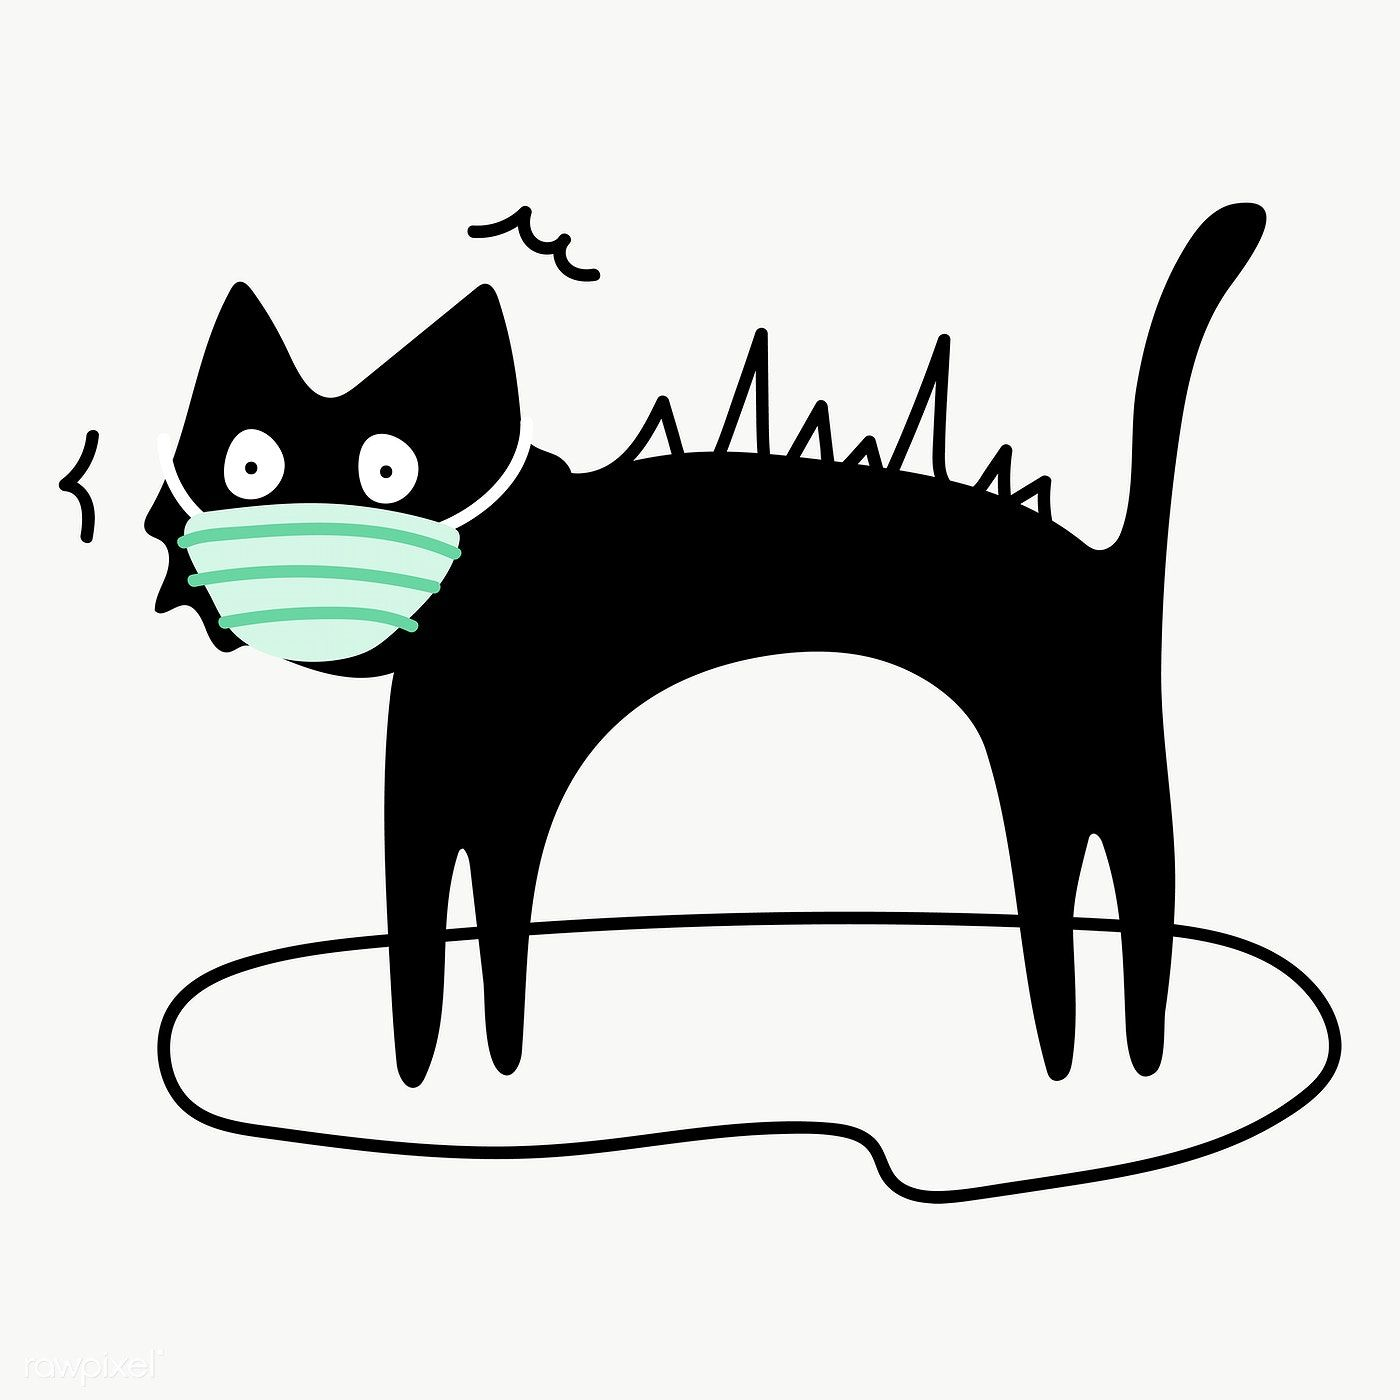 Black Cat Wearing A Surgical Mask Transparent Png Free Image By Rawpixel Com Ningzk V In 2020 Cat Illustration Black Cat Cat Character